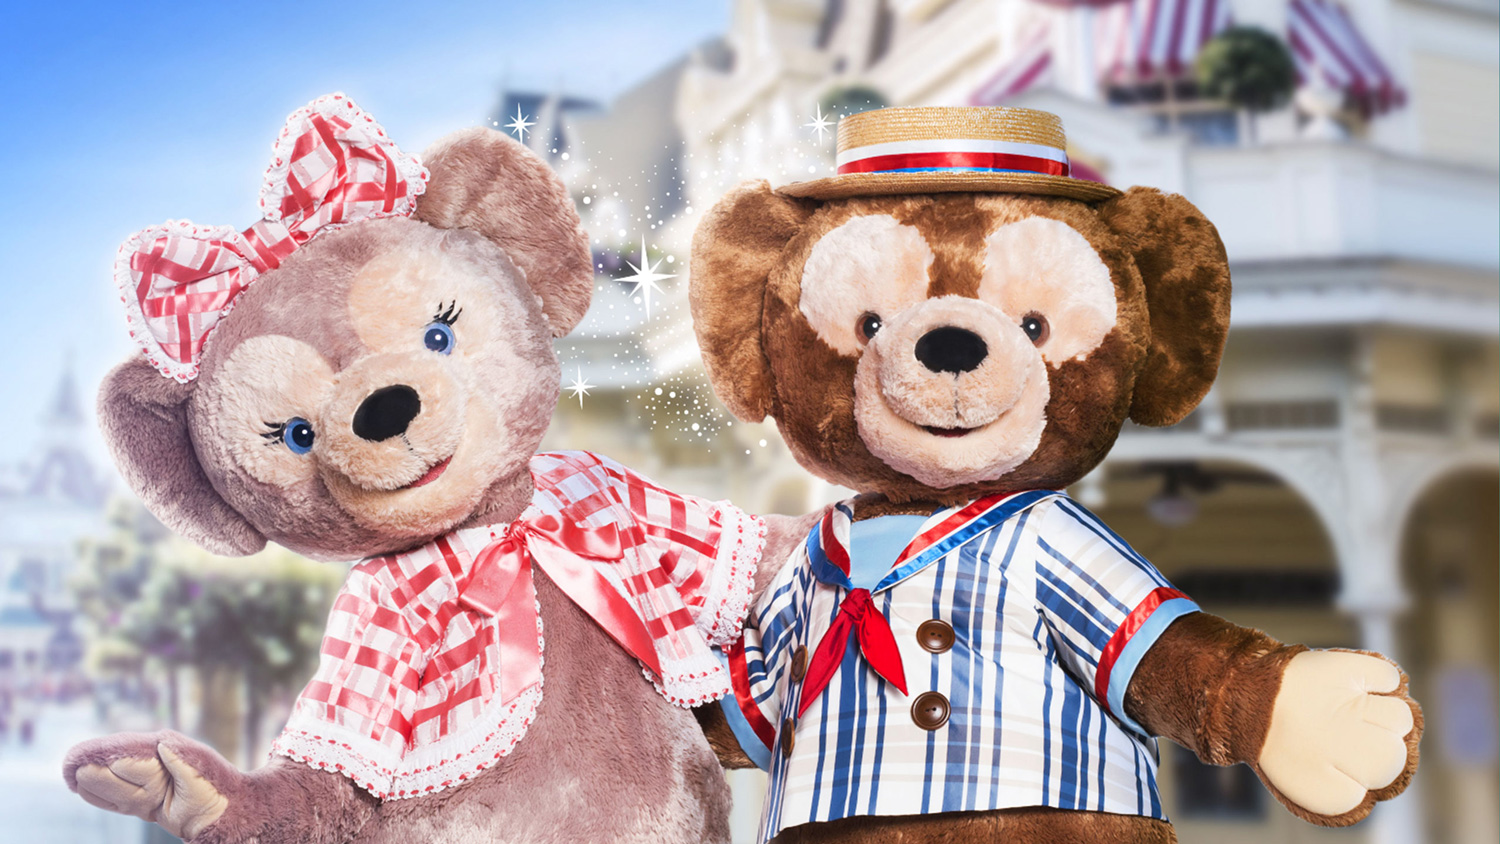 Meet the Rarest and Fairest Disney Characters ShellieMay and Duffy